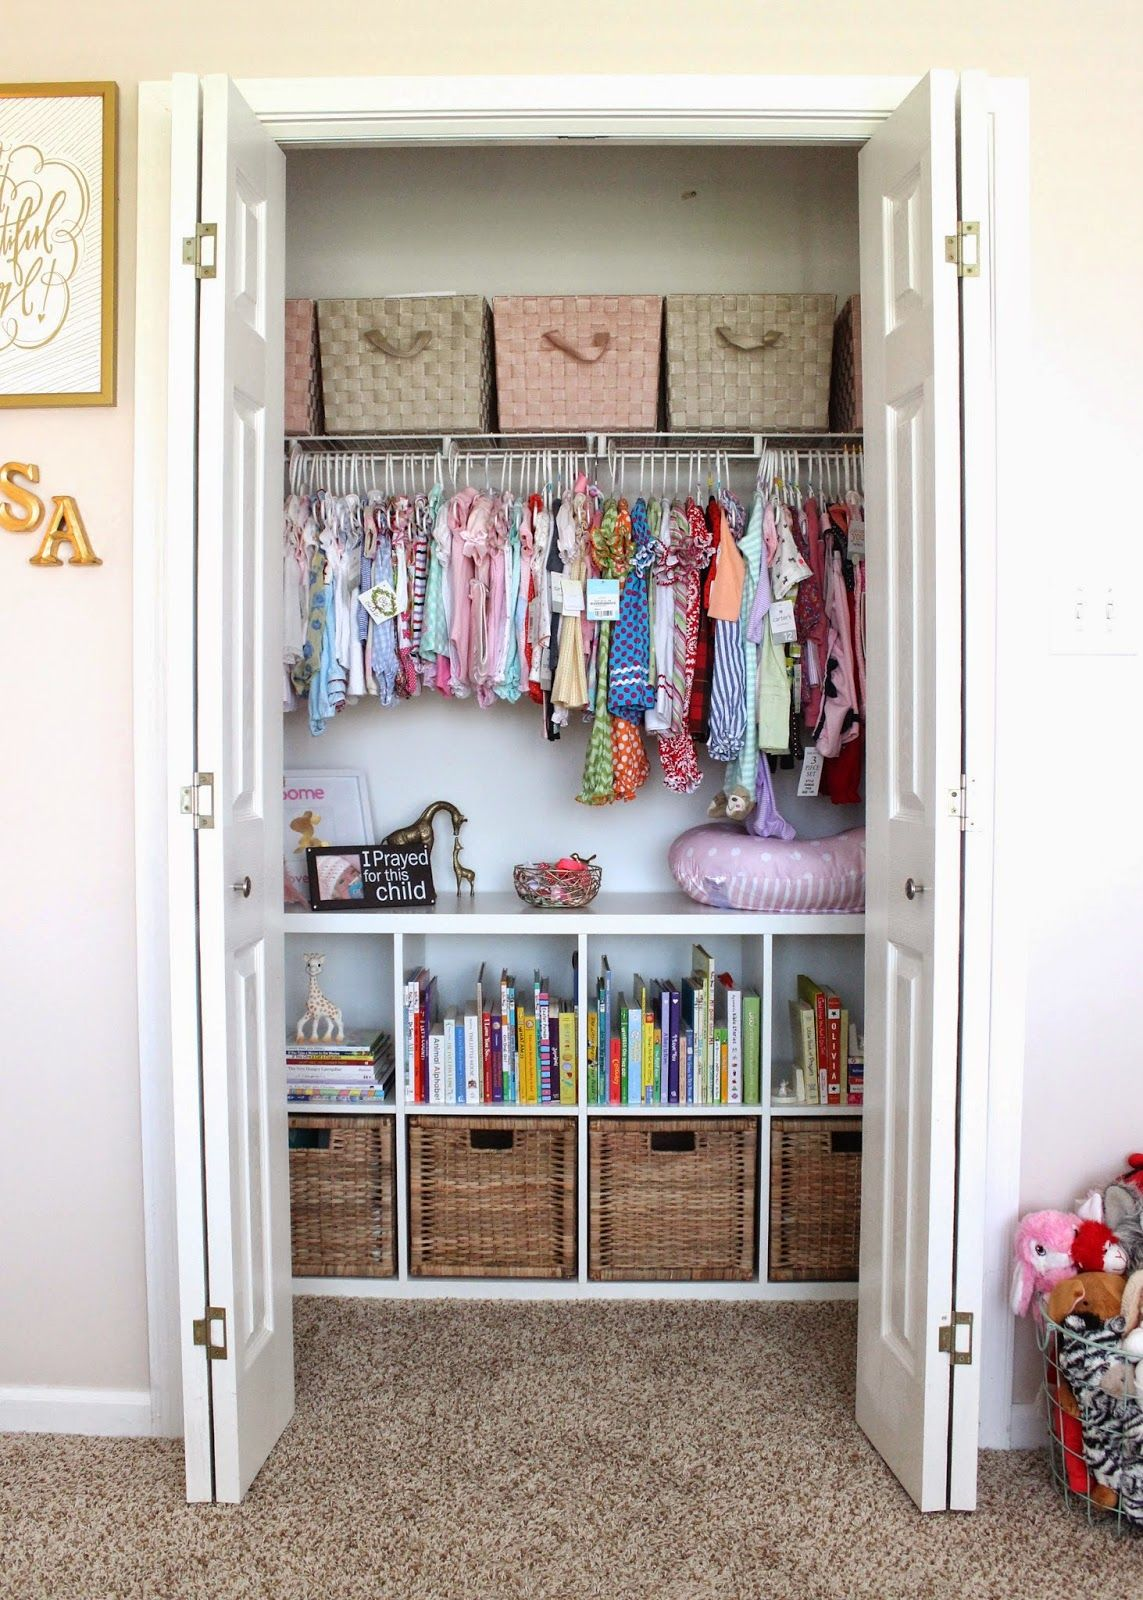 Best 25+ Baby Closet Storage Ideas On Pinterest | Nursery Closet  Organization, Baby Closet Organization And Nursery Storage